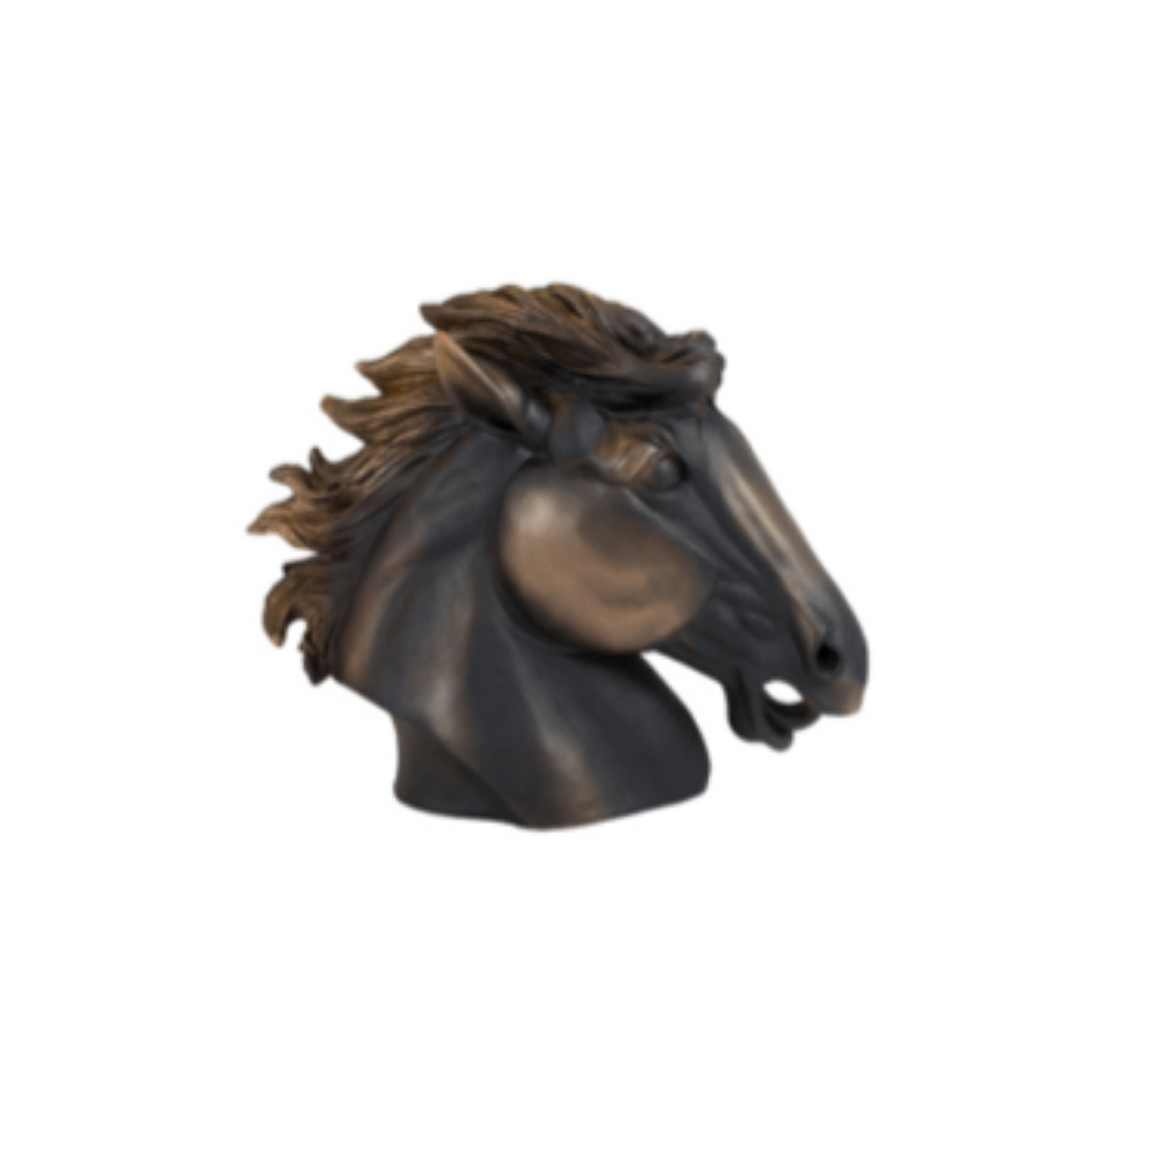 WINX RESIN BRONZE HORSE HEAD